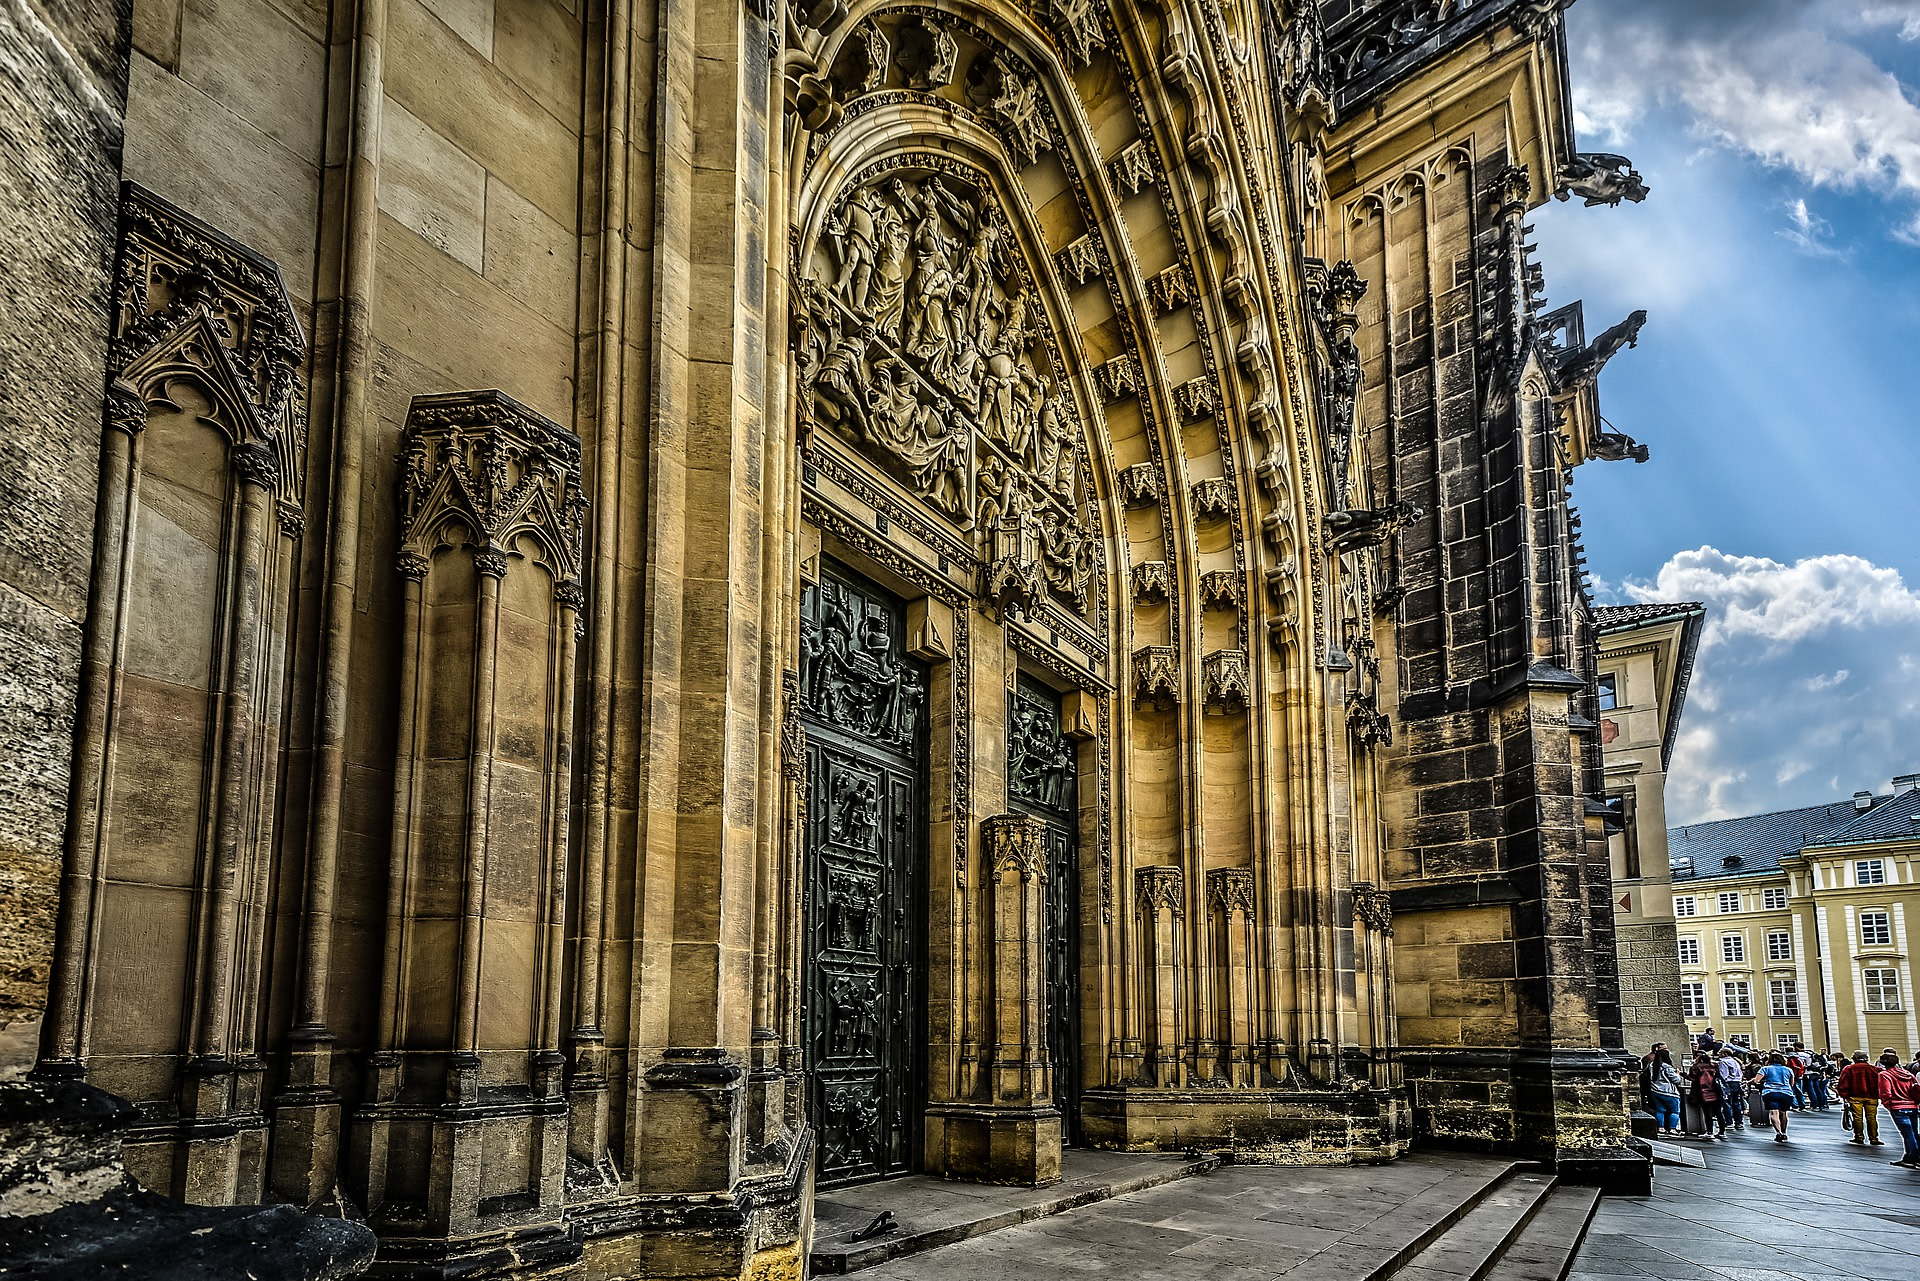 Magnificent Architecture on the St. Vitus Cathedral